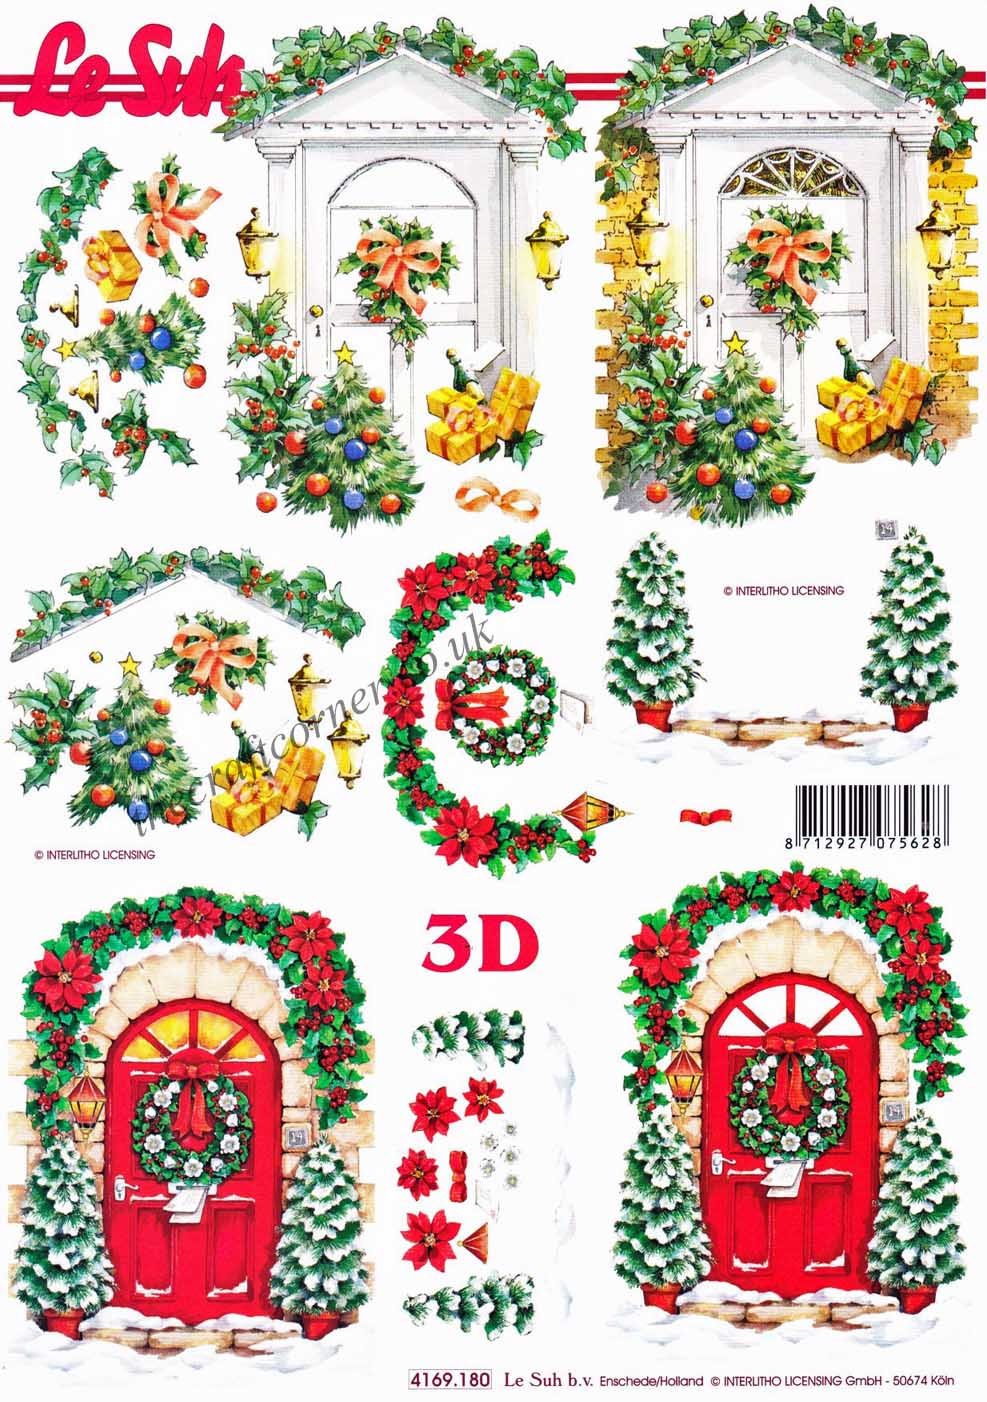 Doors Decorated For Christmas Designs 3d Decoupage Sheet